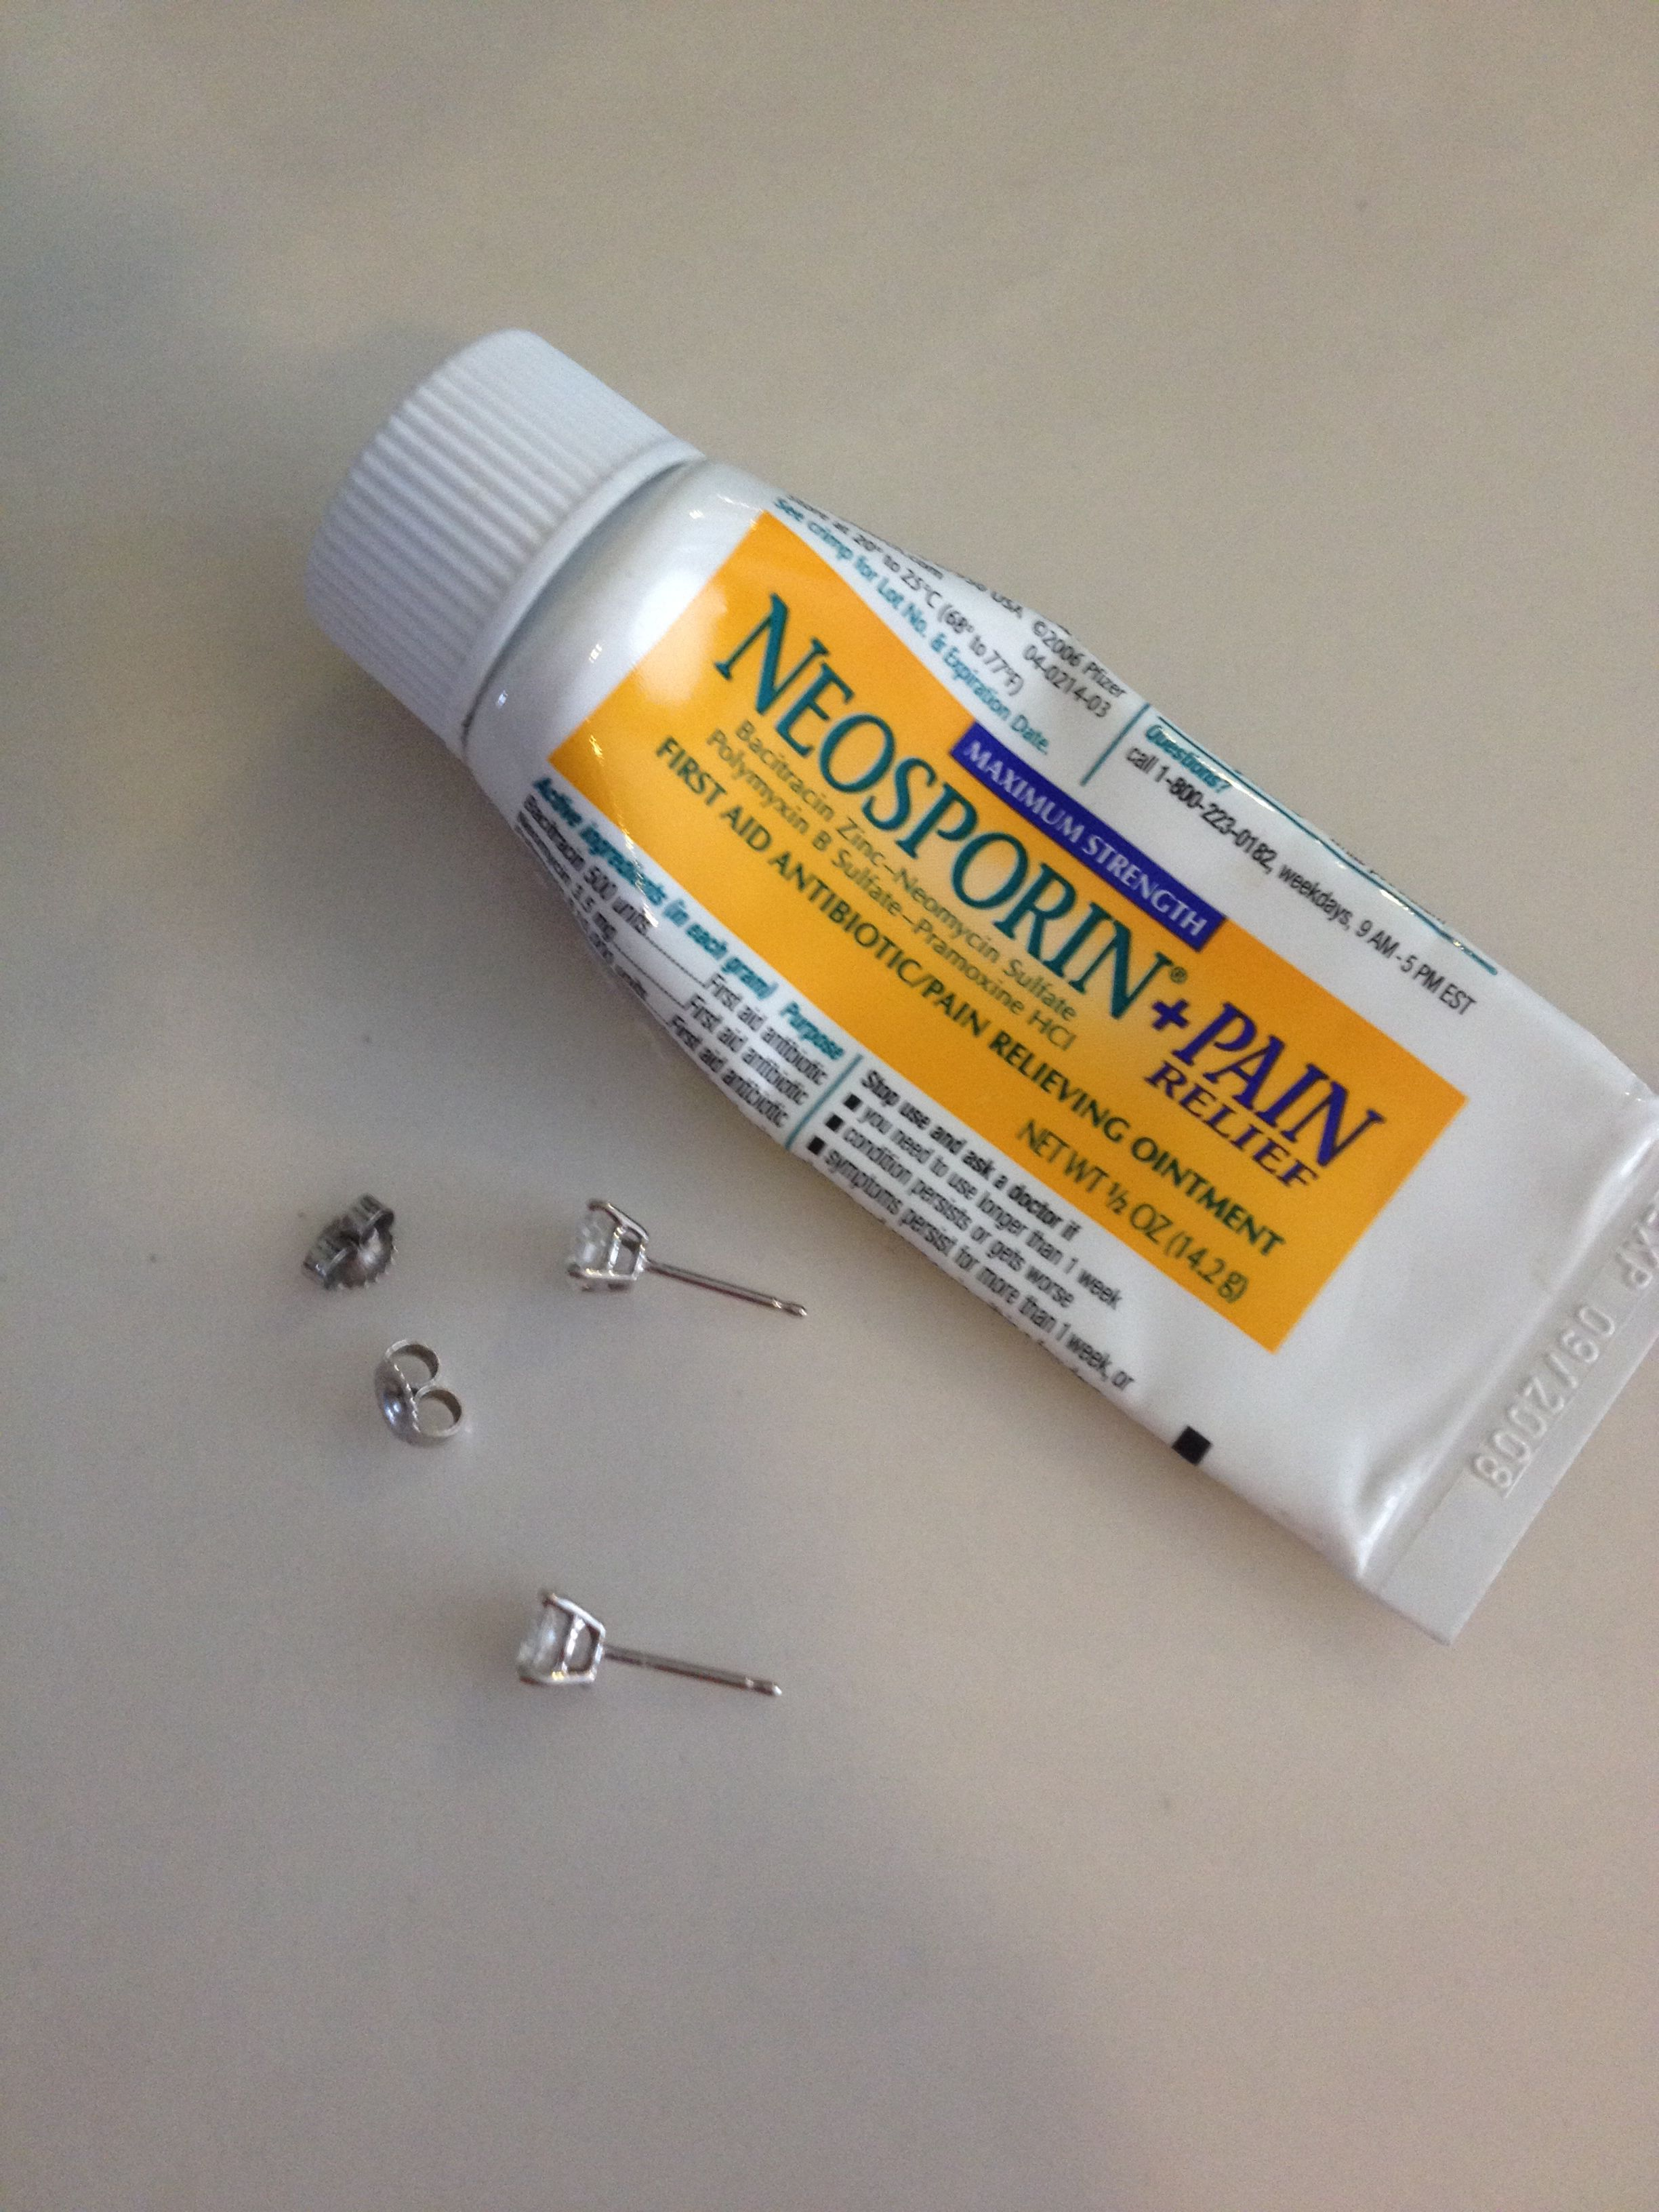 Sensitive Ears Insert Tip Of Earring Into Neosporin Before